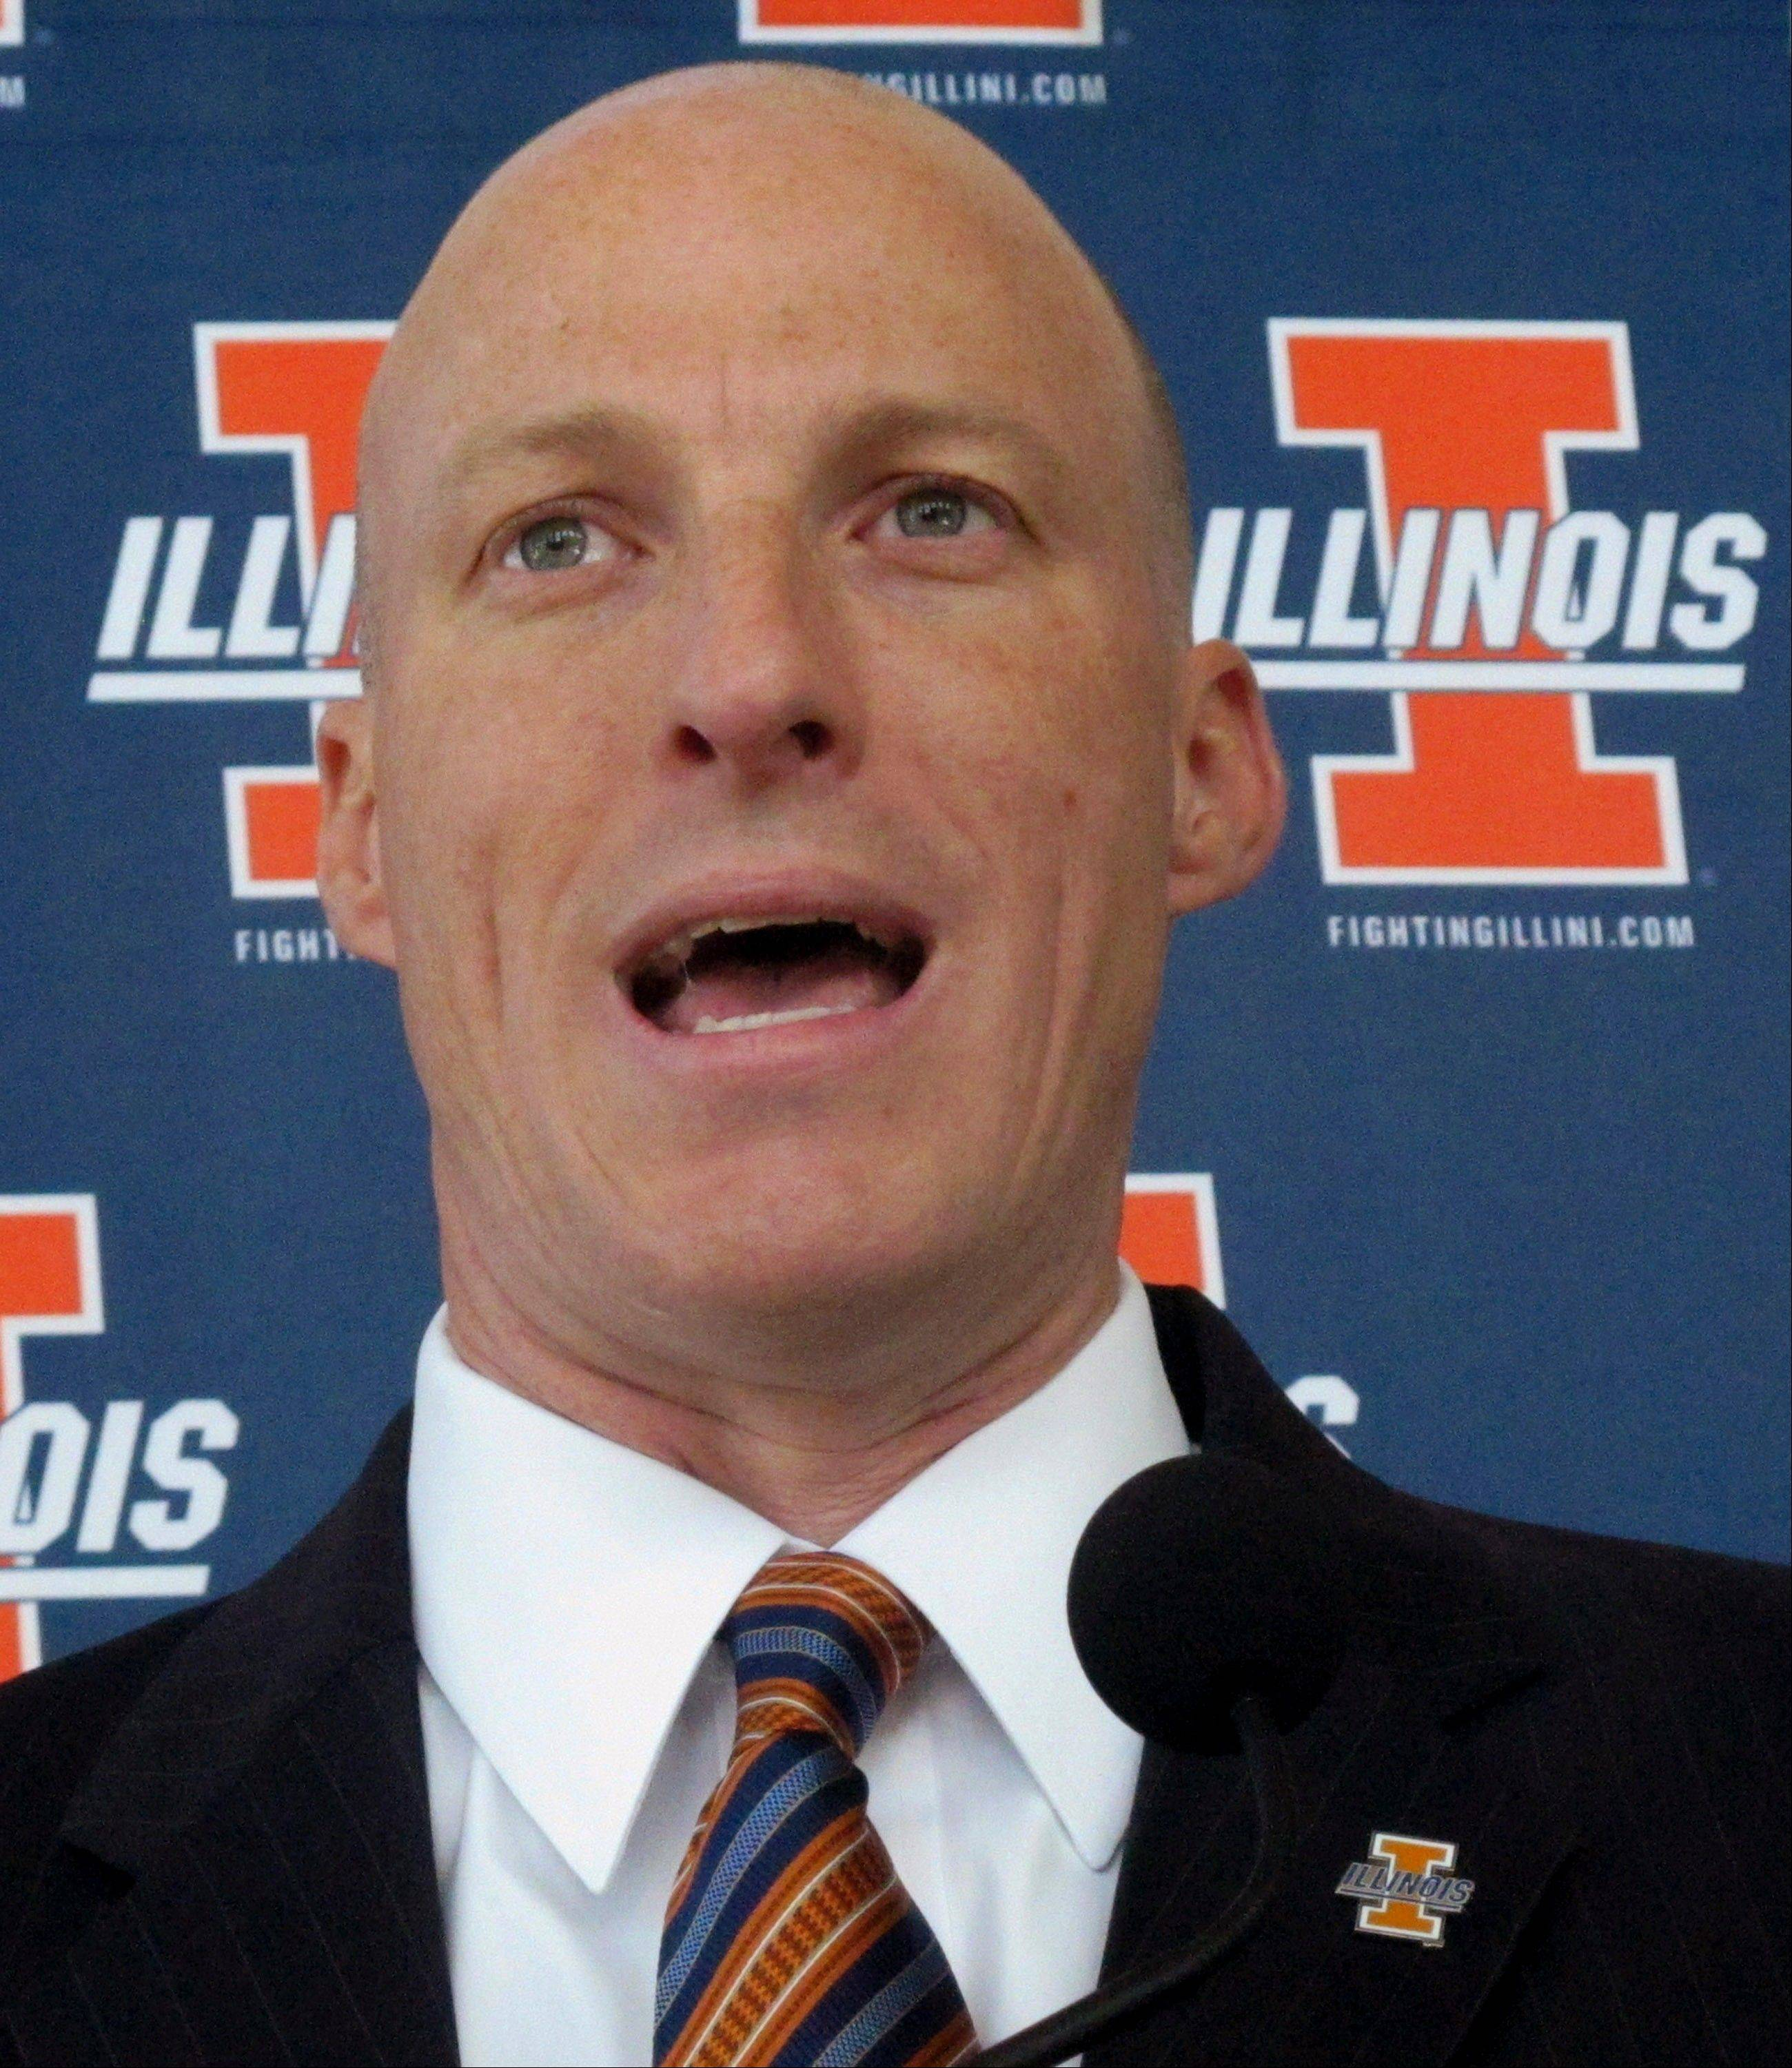 First-year Illinois basketball coach John Groce talks to reporters Wednesday during the team�s media day in Champaign. Groce, who replaced Bruce Weber earlier this year, says he plans to play a fast-paced style but isn�t yet sure how much of that up-tempo game the team�s current roster can handle.